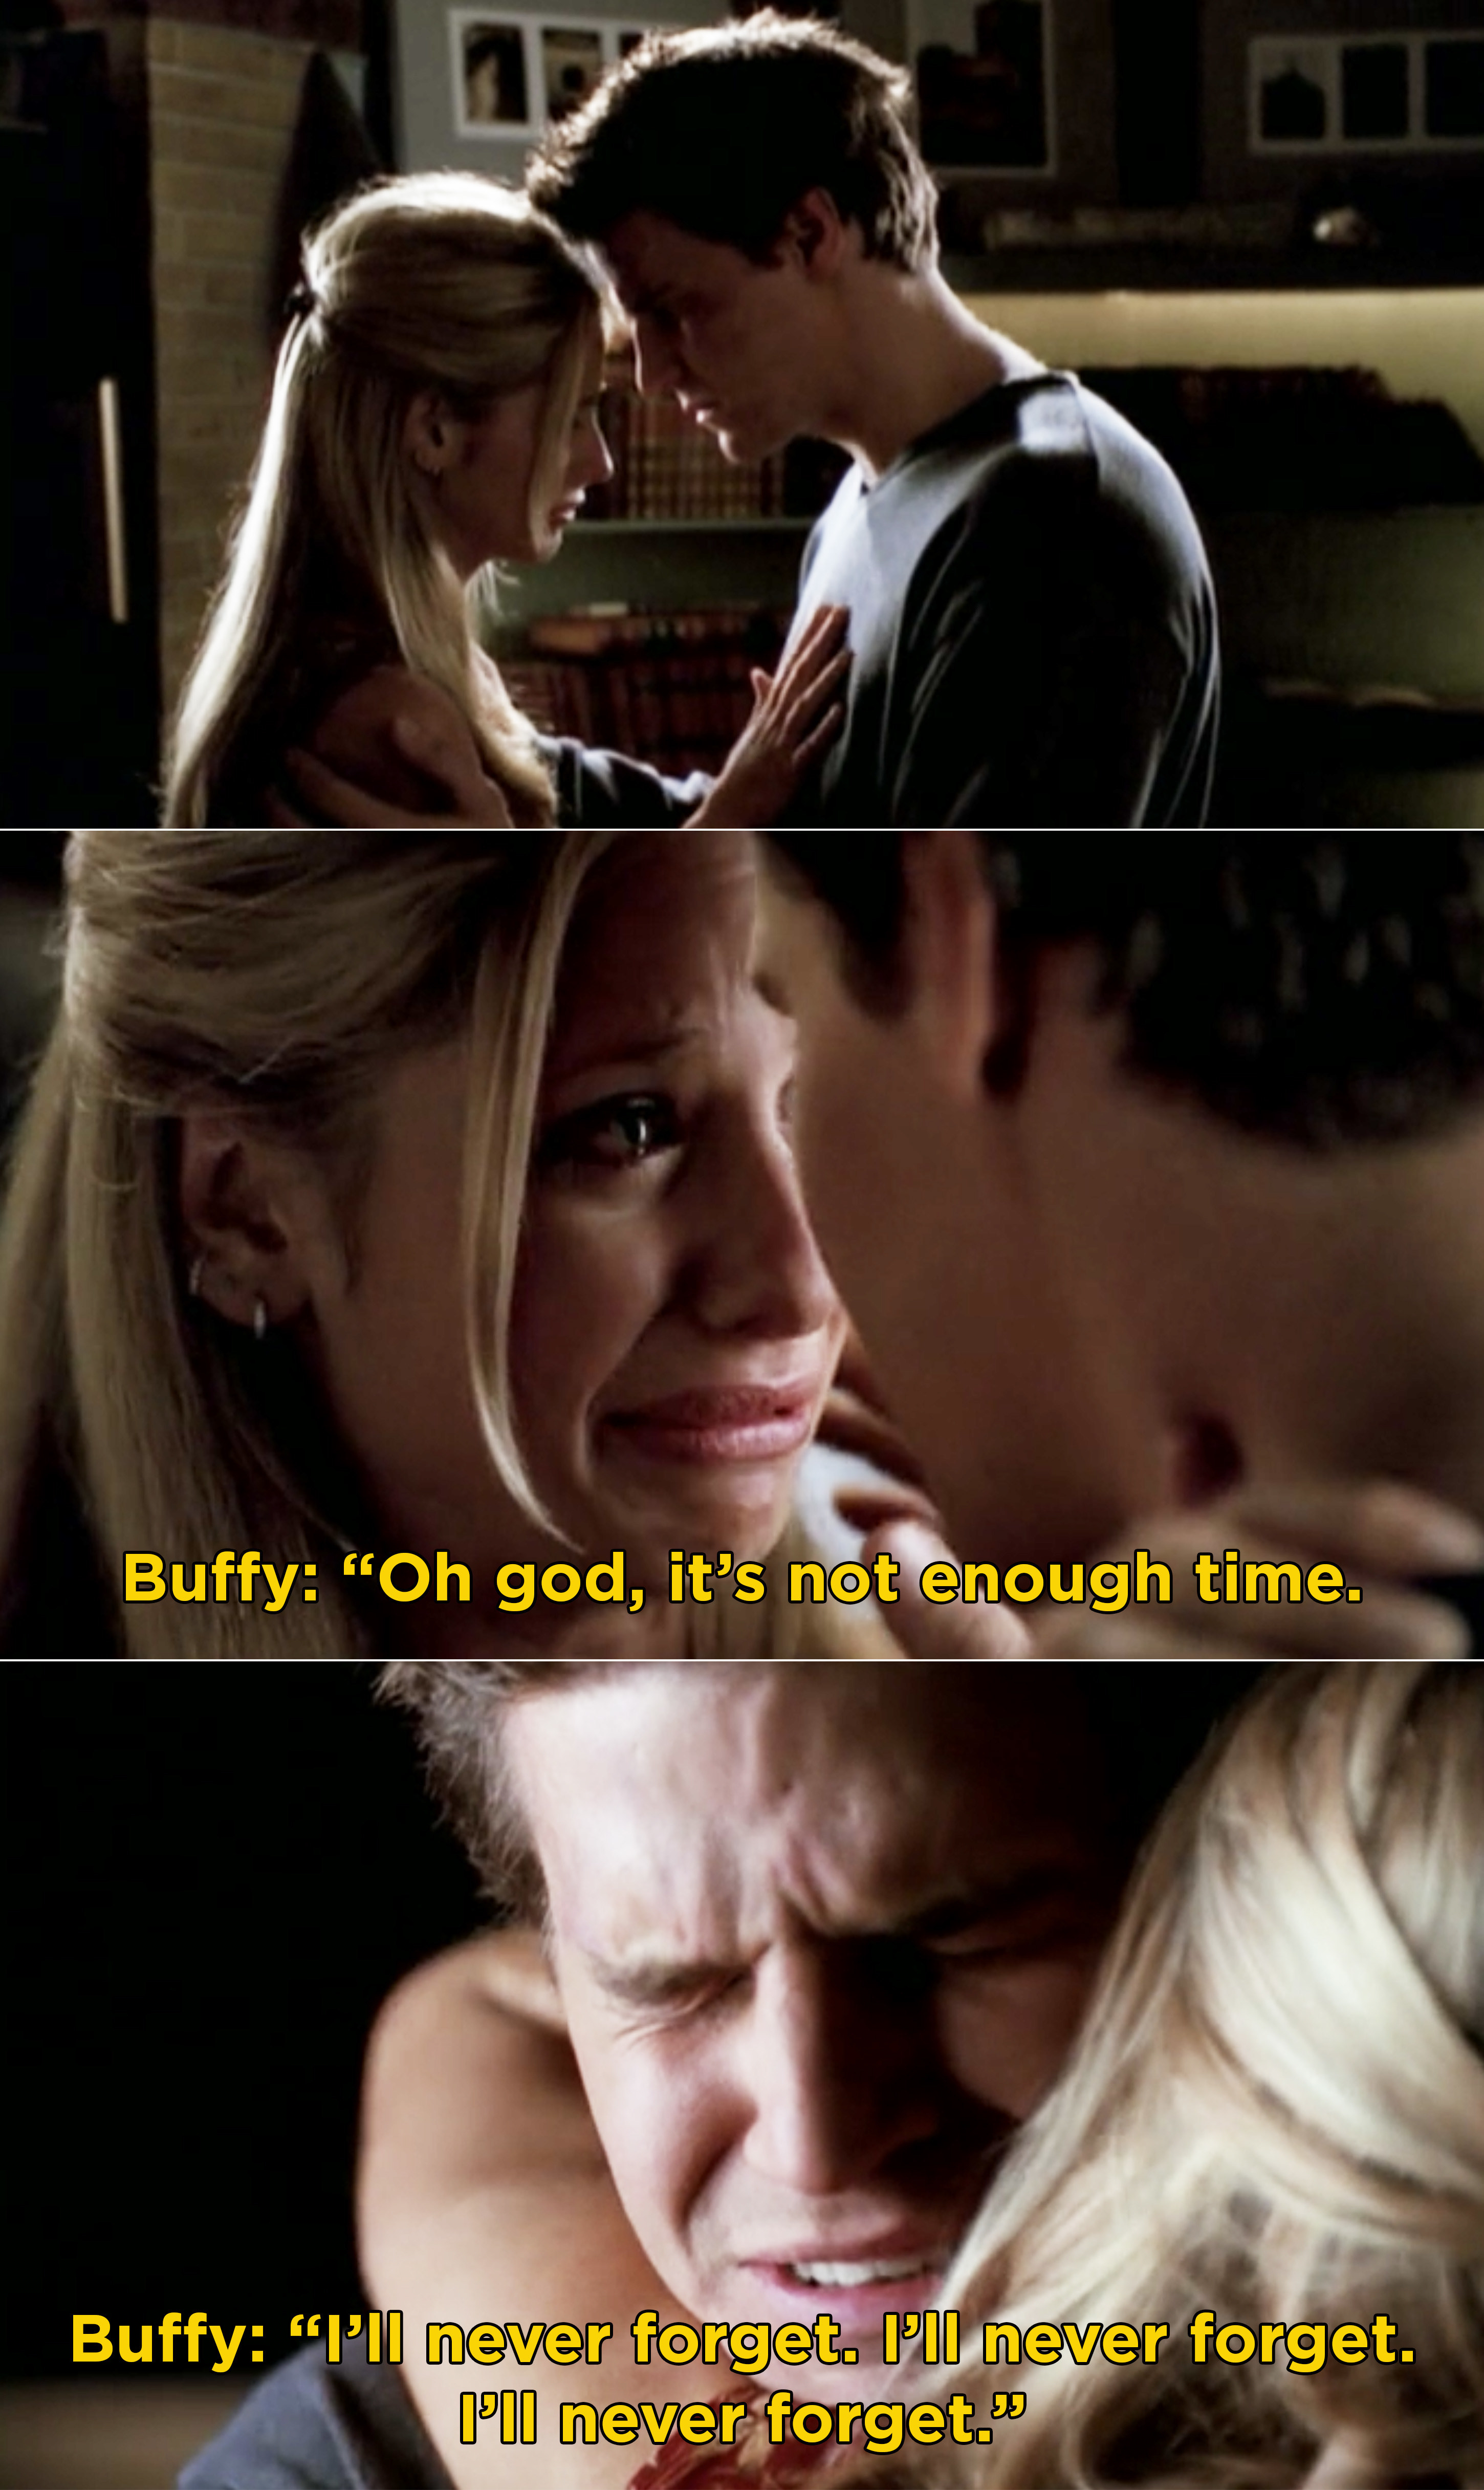 Buffy wishing they had more time and saying she will never forget